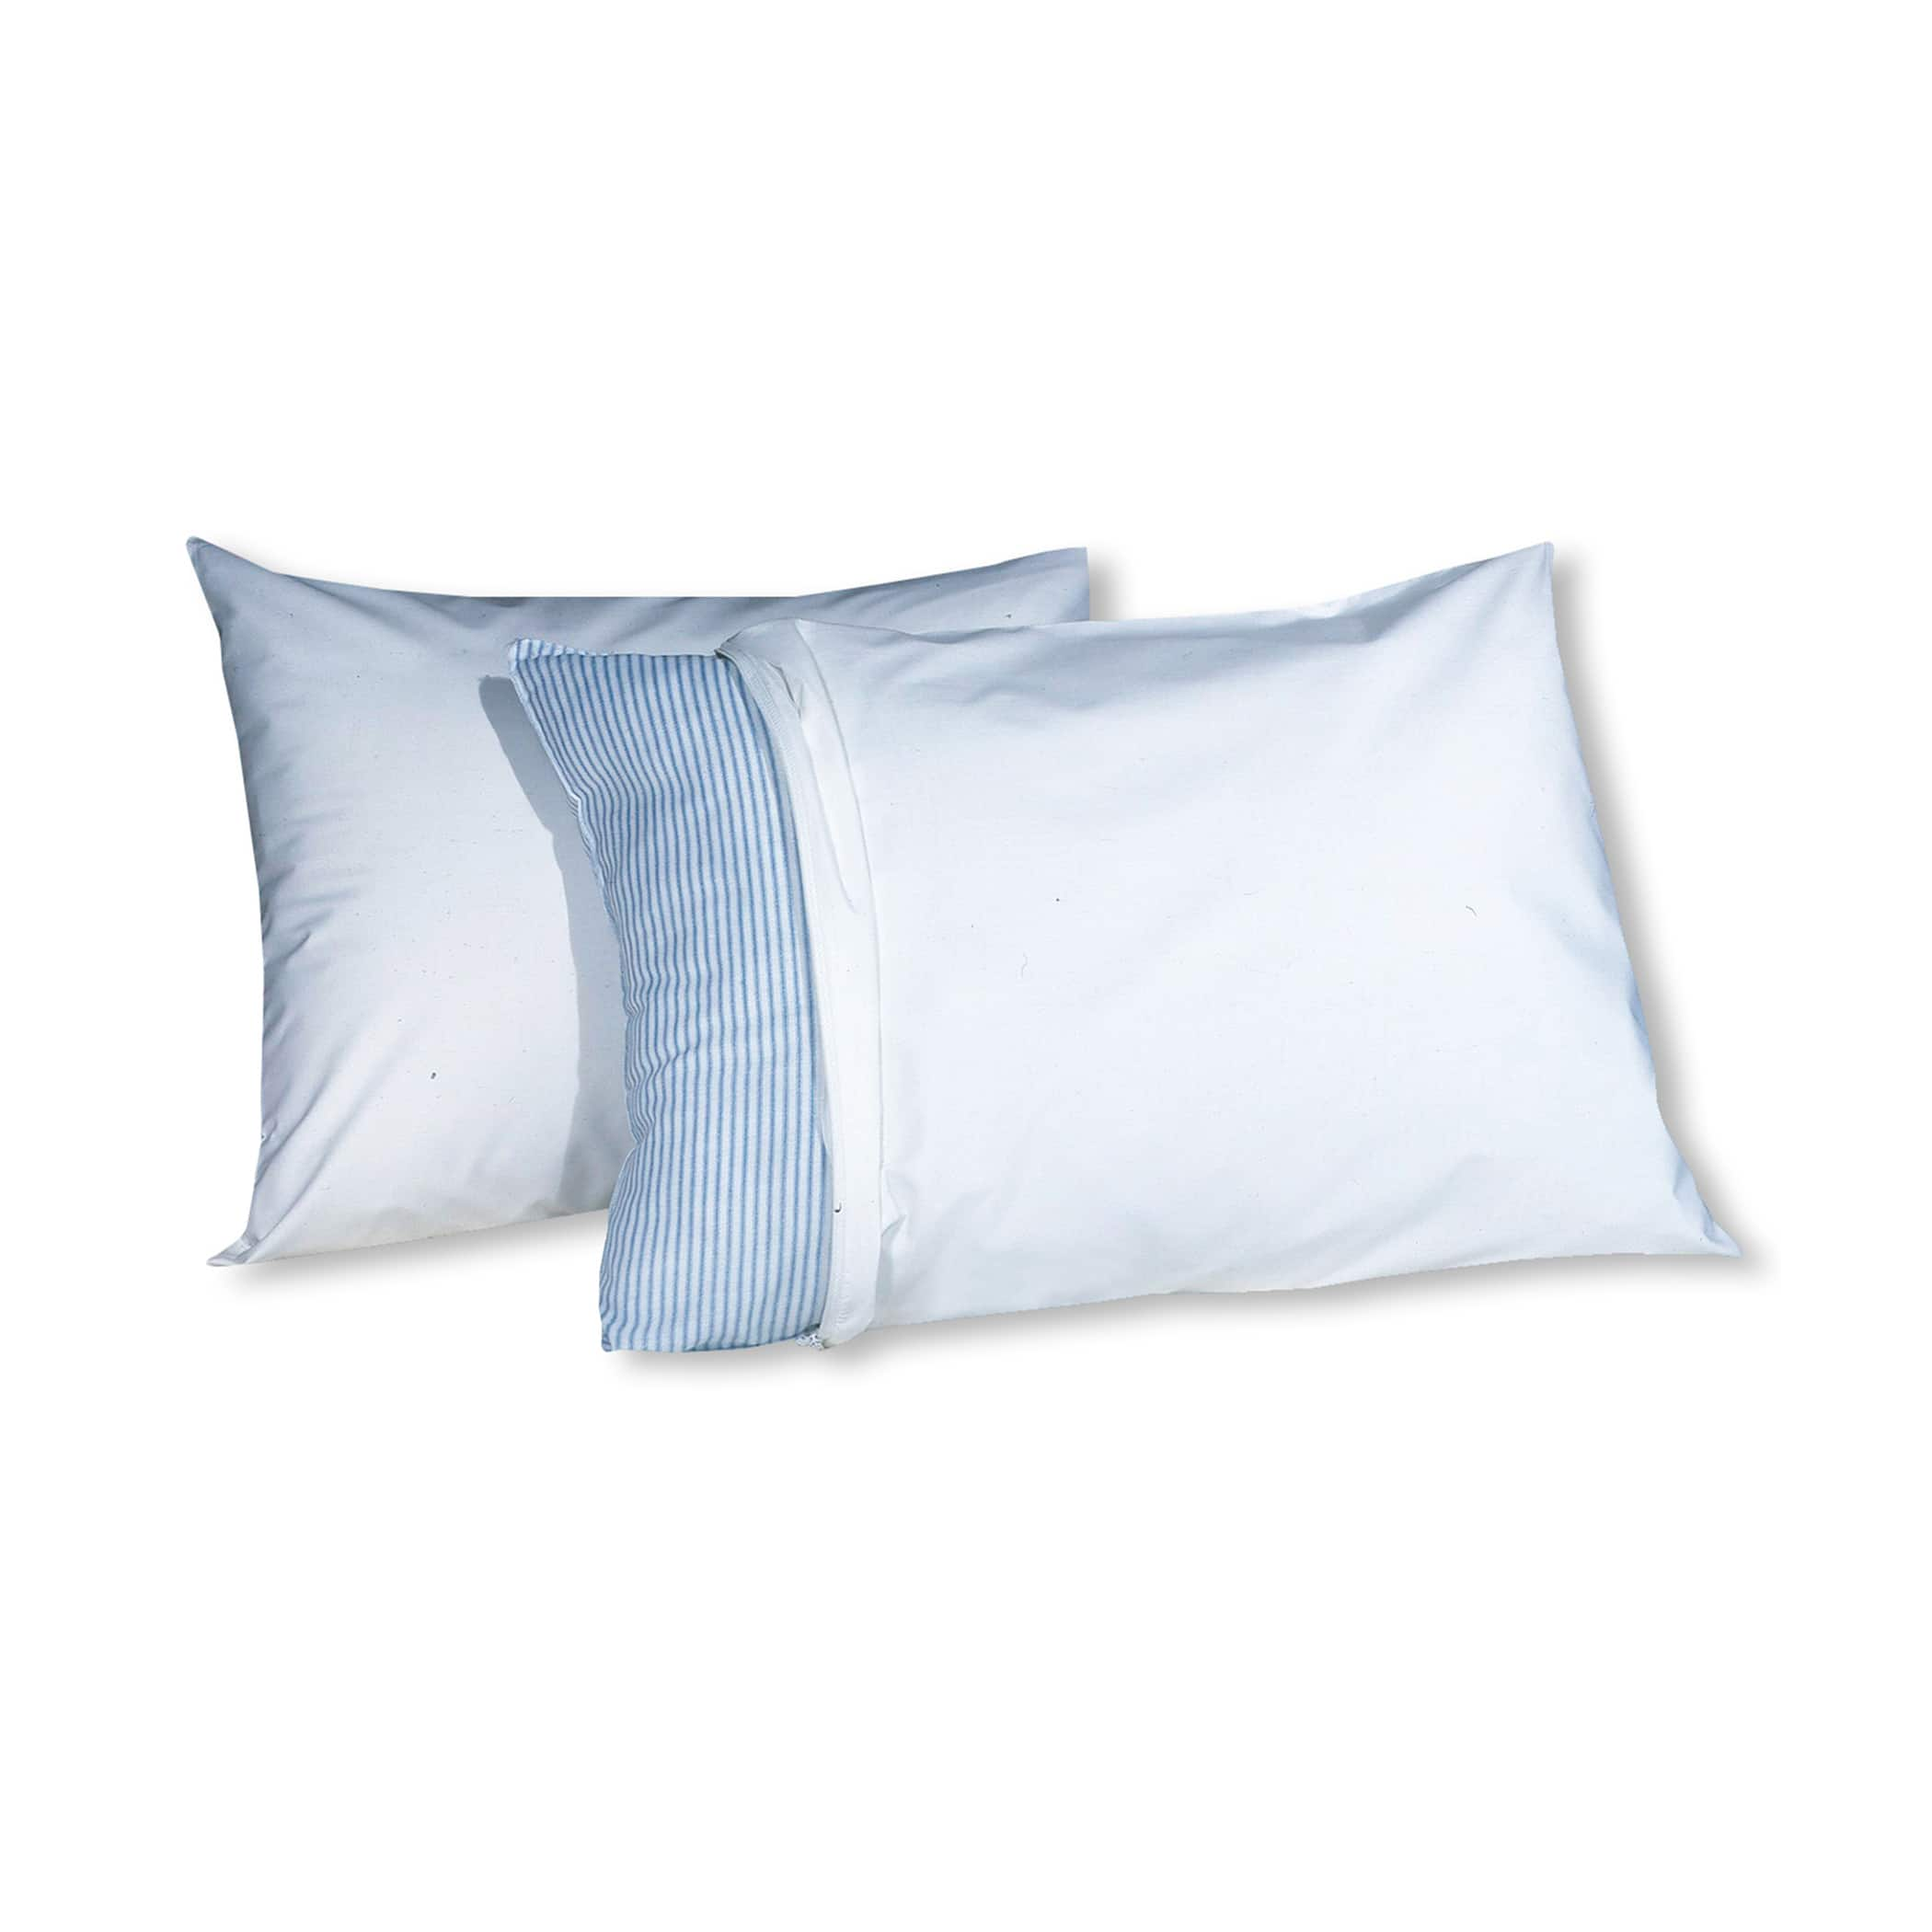 2-Pack Pillow Guard Allergy Relief Pillow Protectors (Standard) $2.90 + Free Shipping w/ Walmart+ or $35+